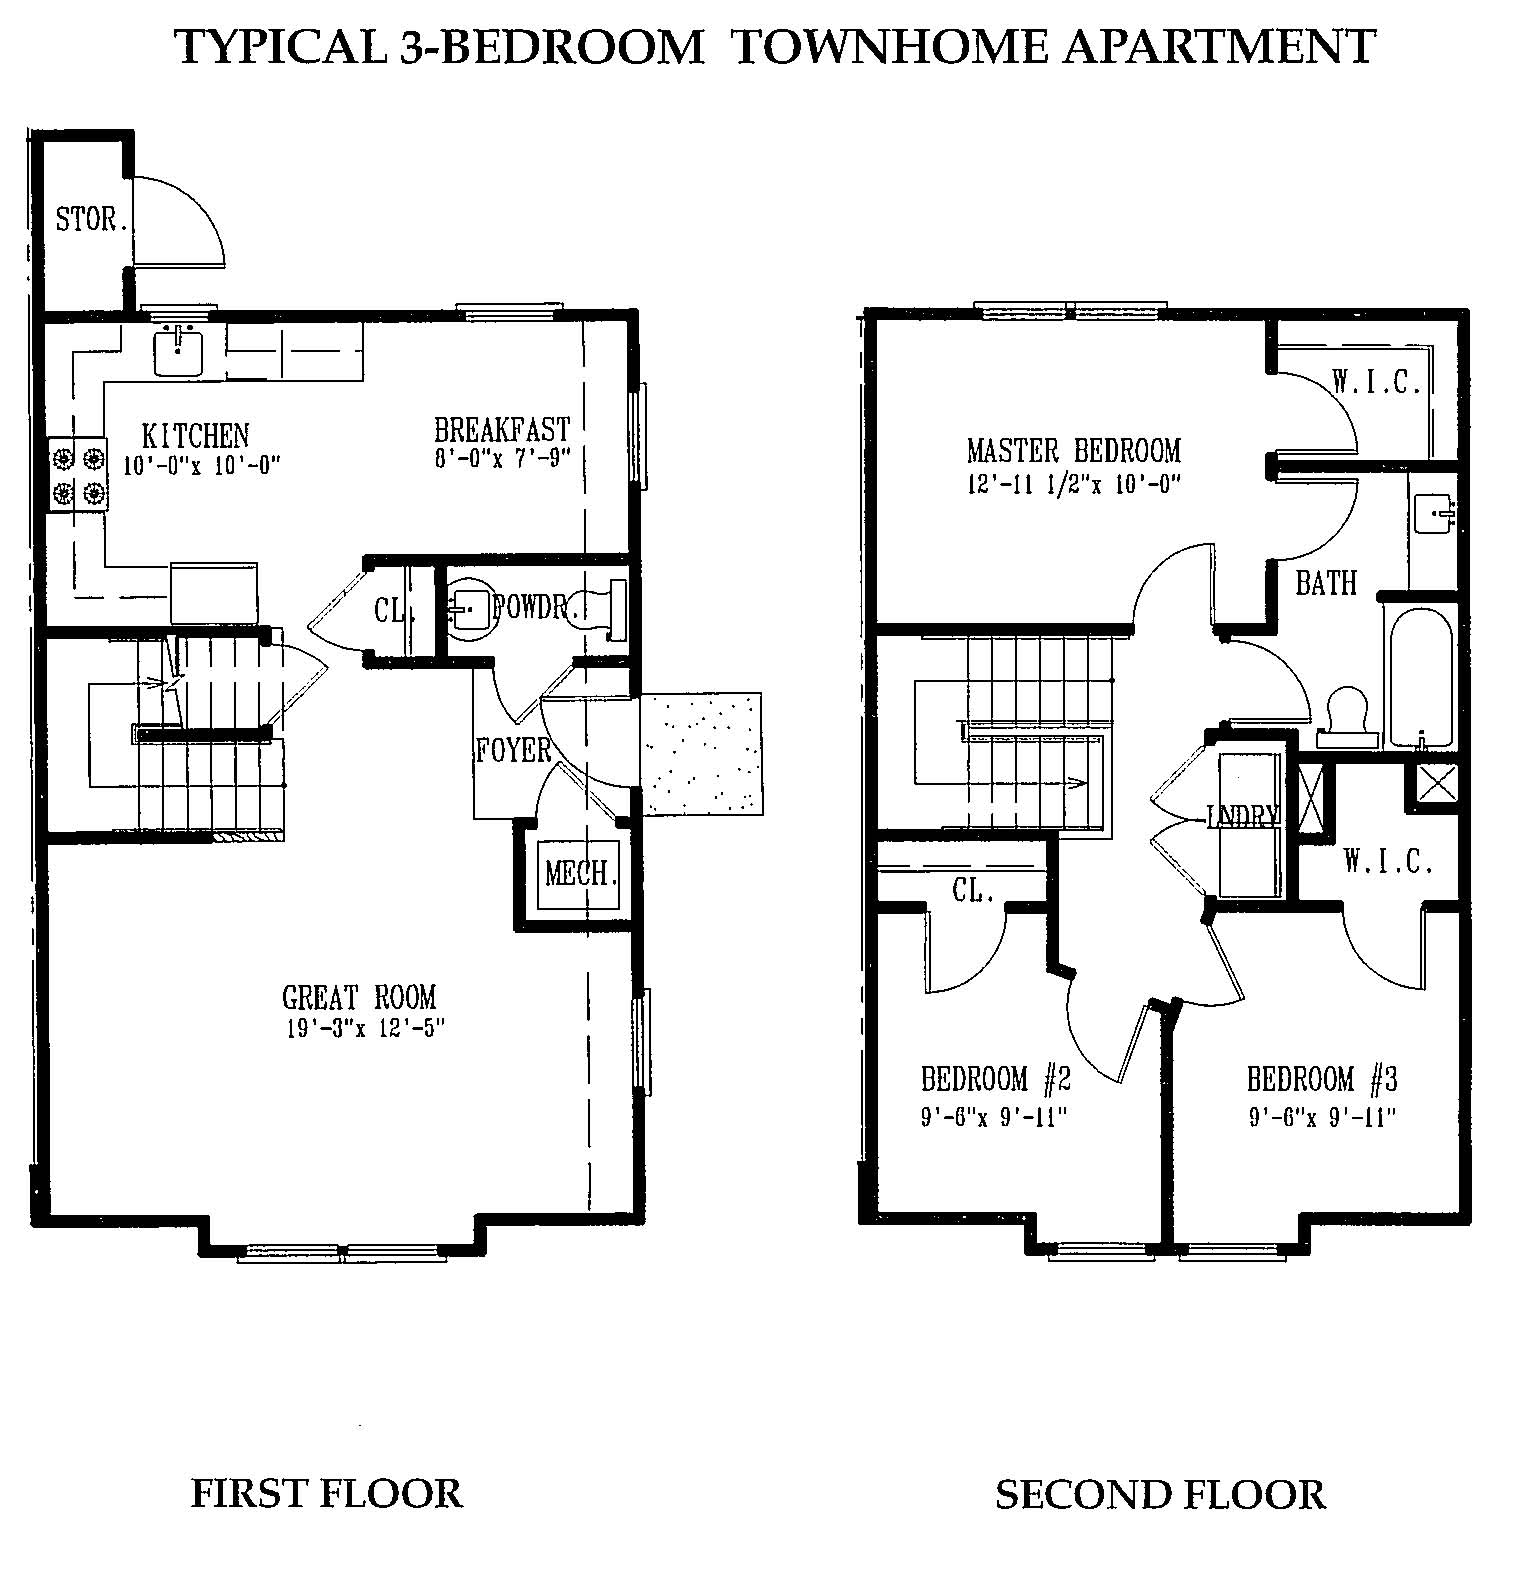 Three bedroom townhome greenlawn apartments for 3 bedroom townhomes